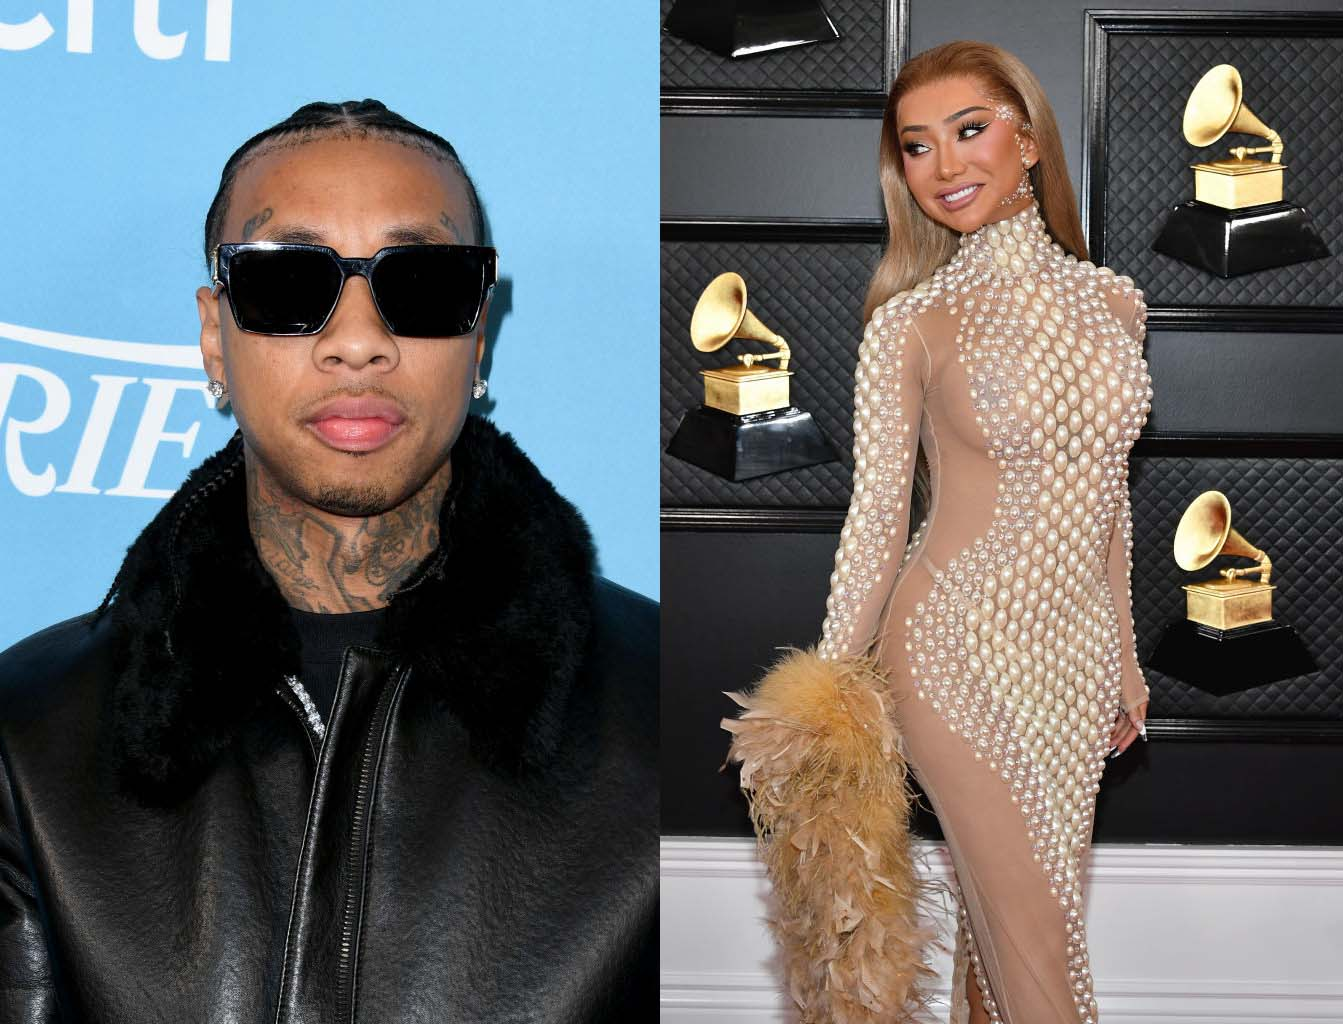 Tyga Slams Nikita Dragun After Exposing DMs 'For Clout?' Rapper Explains What Actually Was The Message For